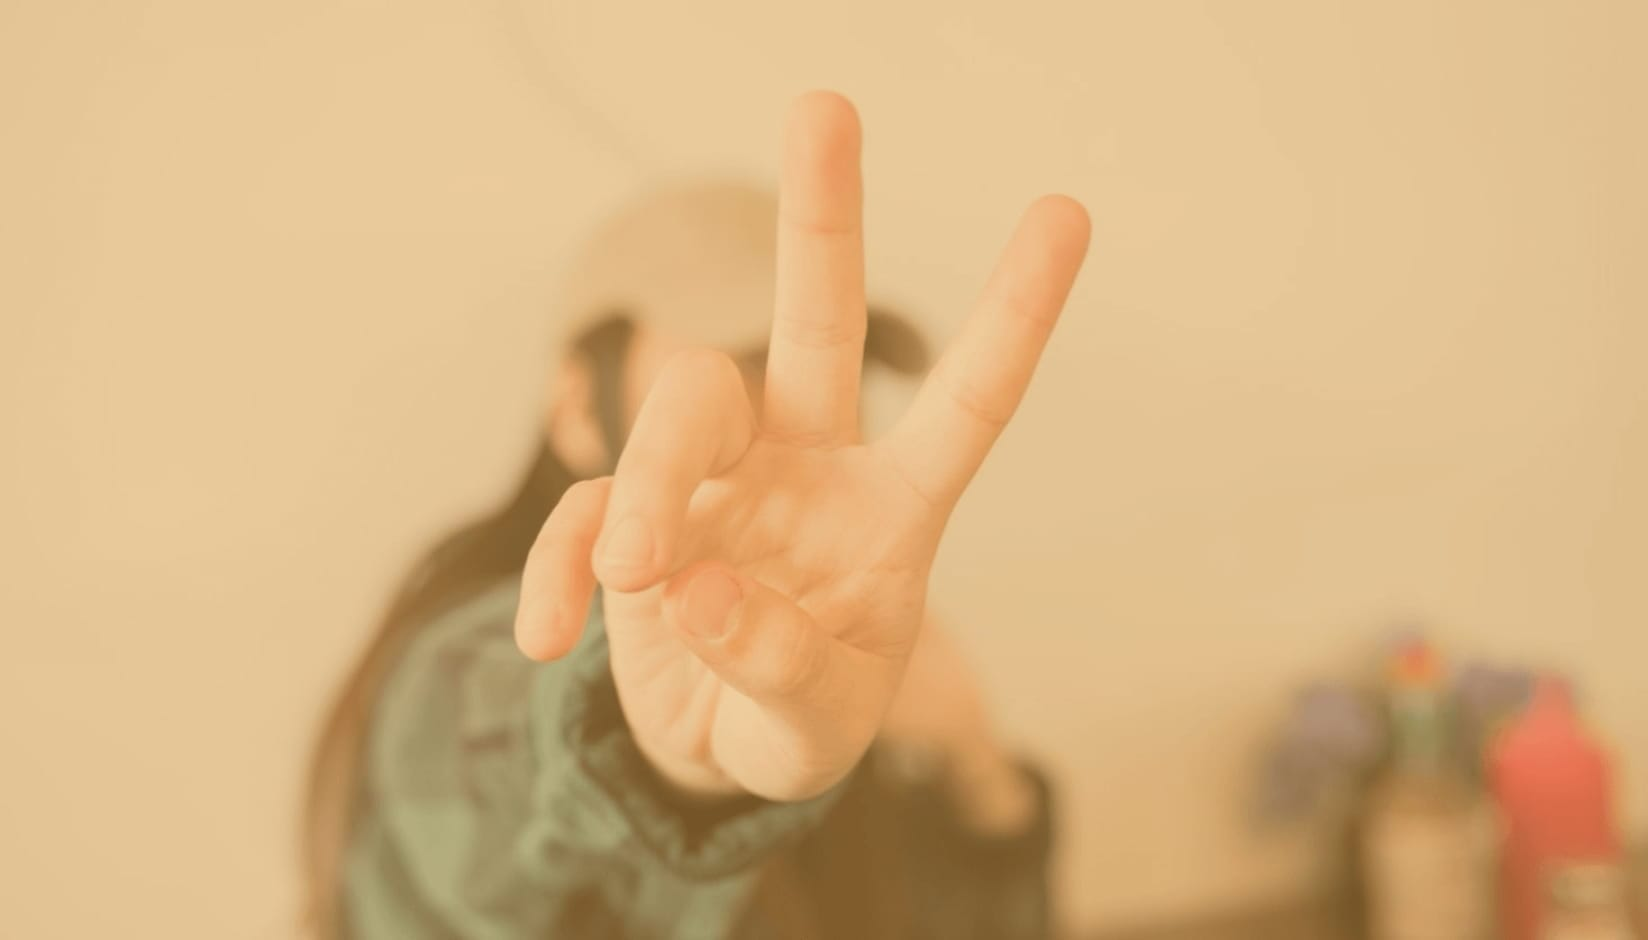 girl showing v sign with her fingers